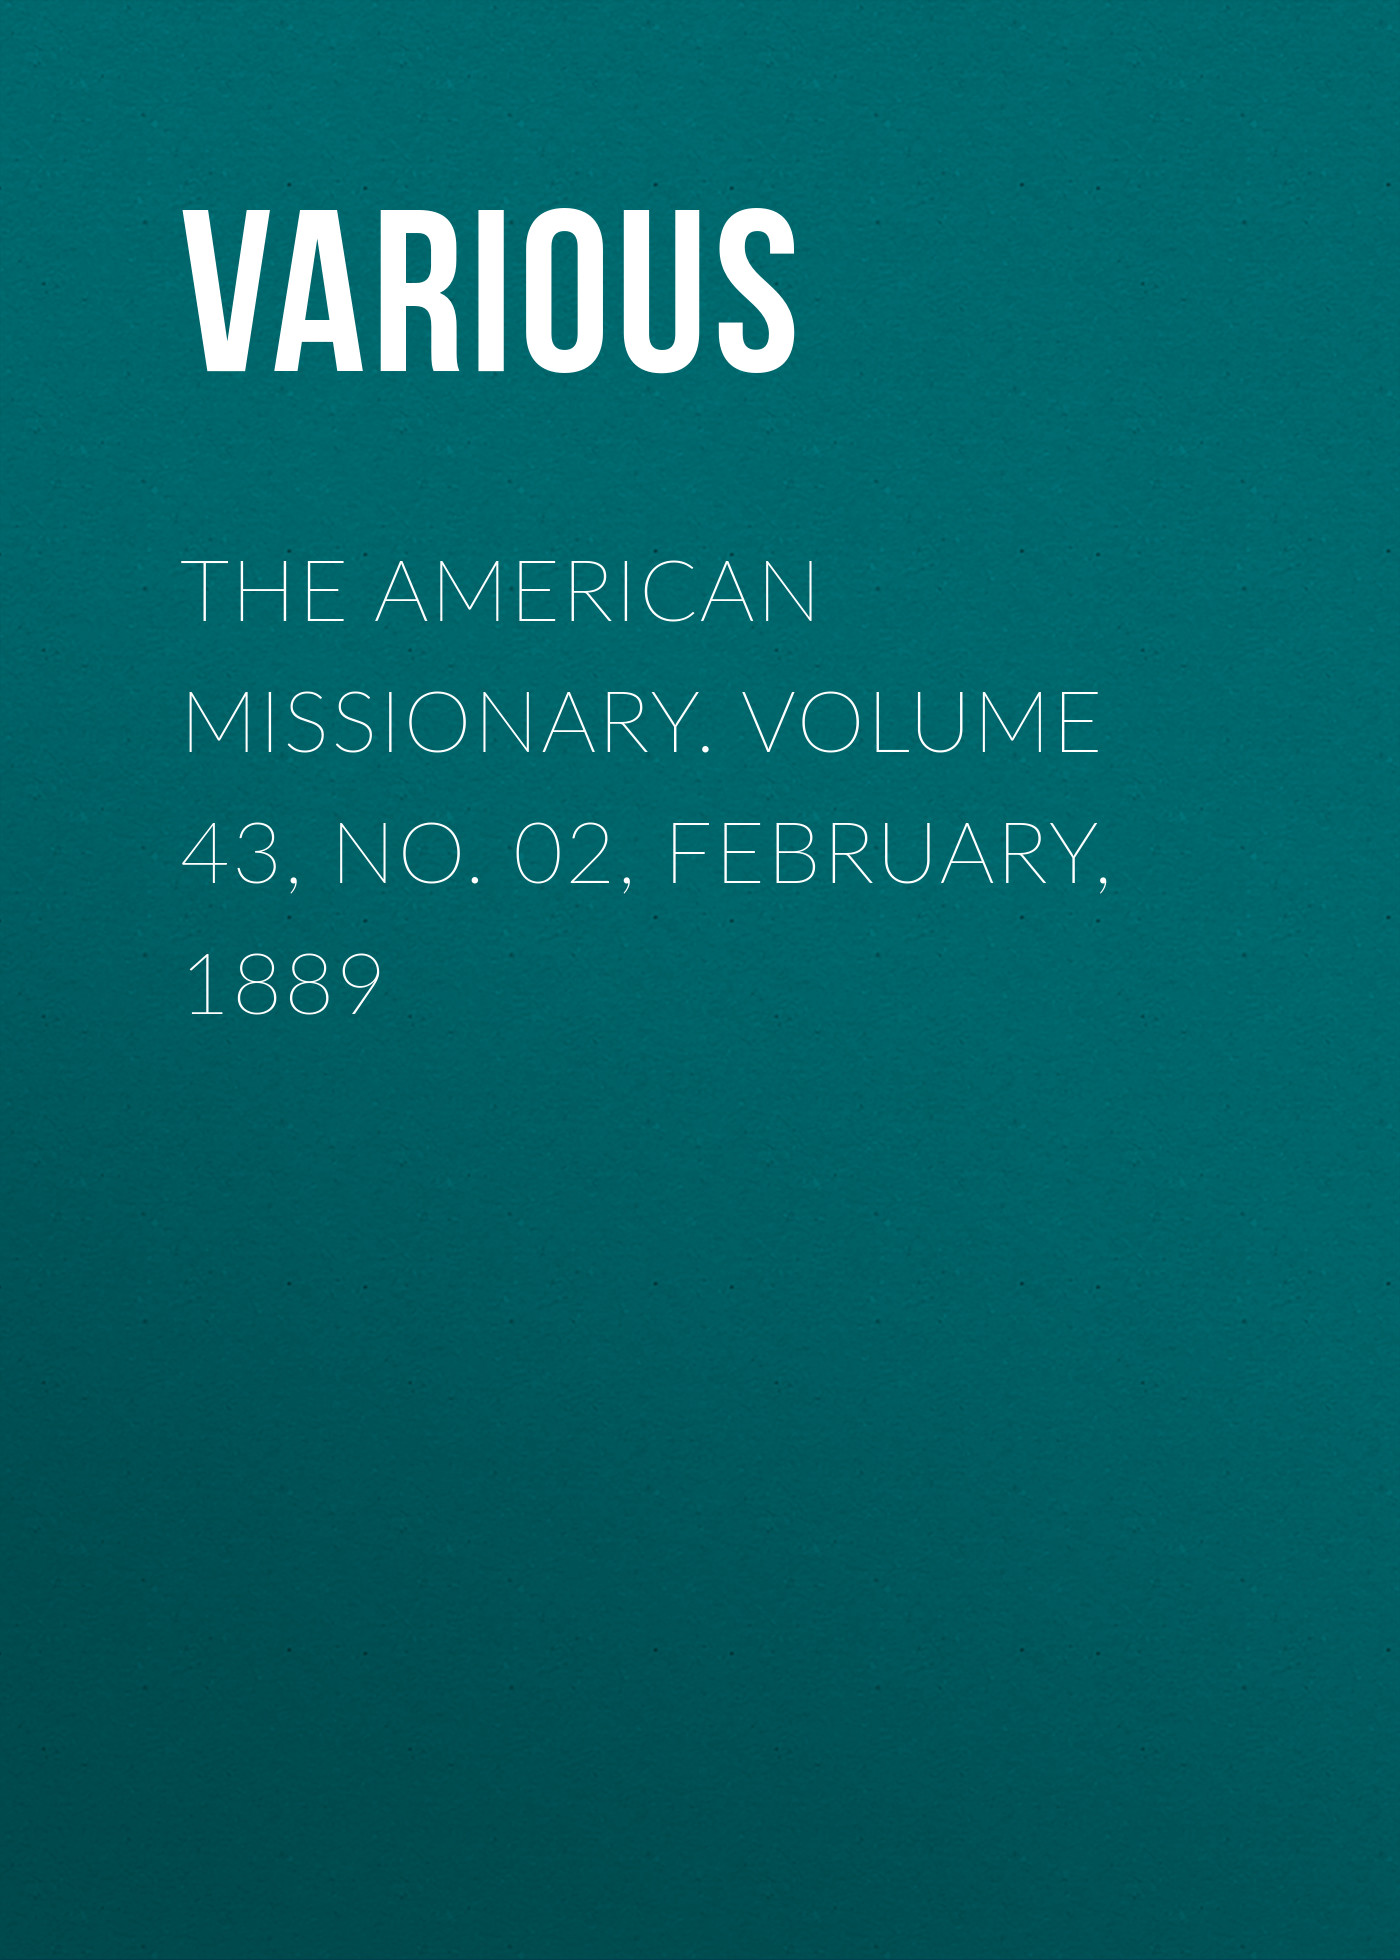 Various The American Missionary. Volume 43, No. 02, February, 1889